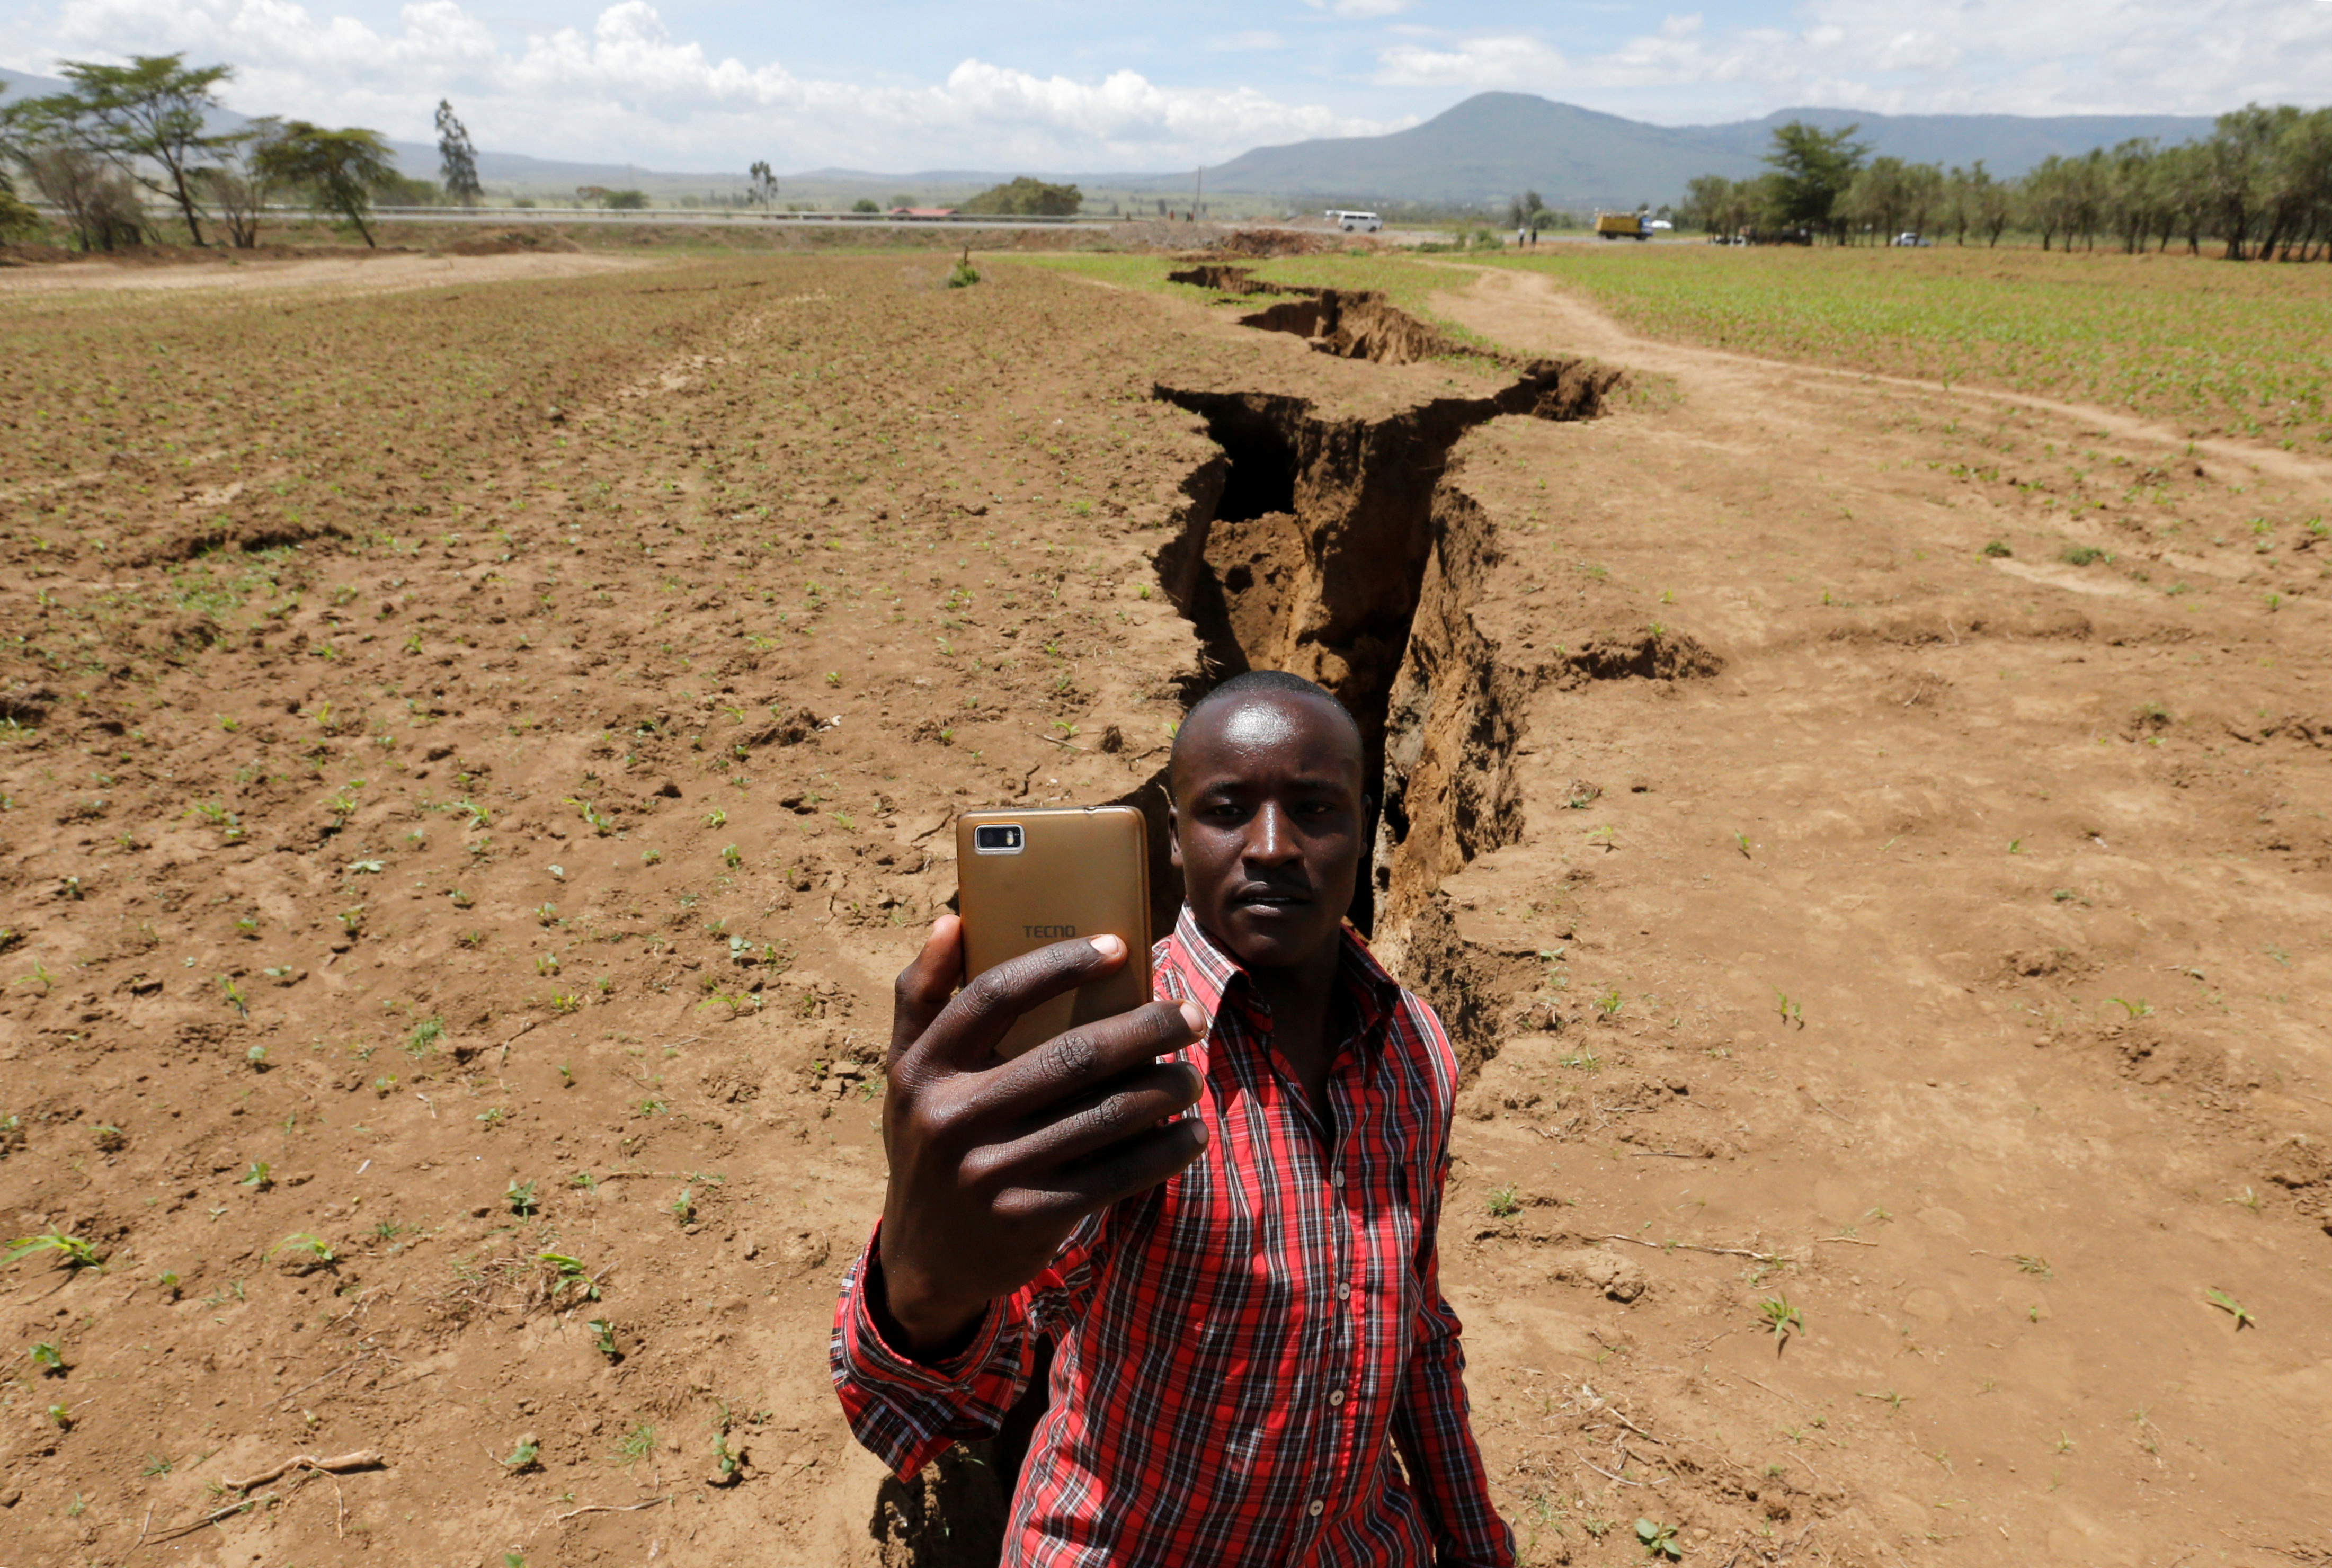 A man takes a selfie photograph near a chasm suspected to have been caused by a heavy downpour along an underground fault-line near the Rift Valley town of Mai Mahiu, Kenya March 28, 2018. Picture taken March 28, 2018.